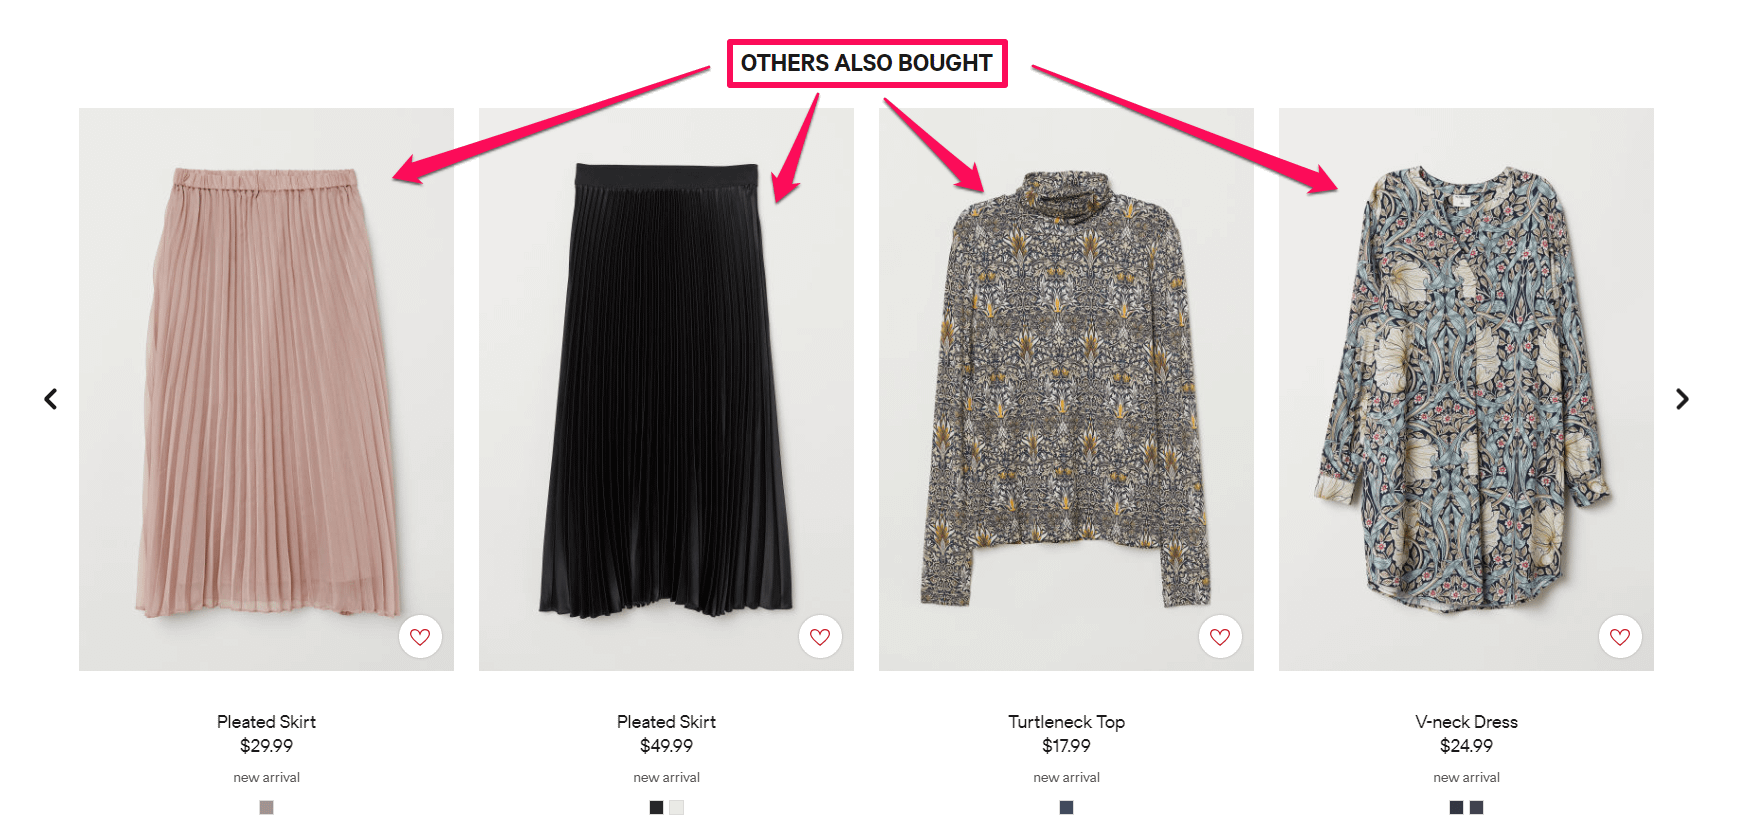 collaborative filtering example H&M